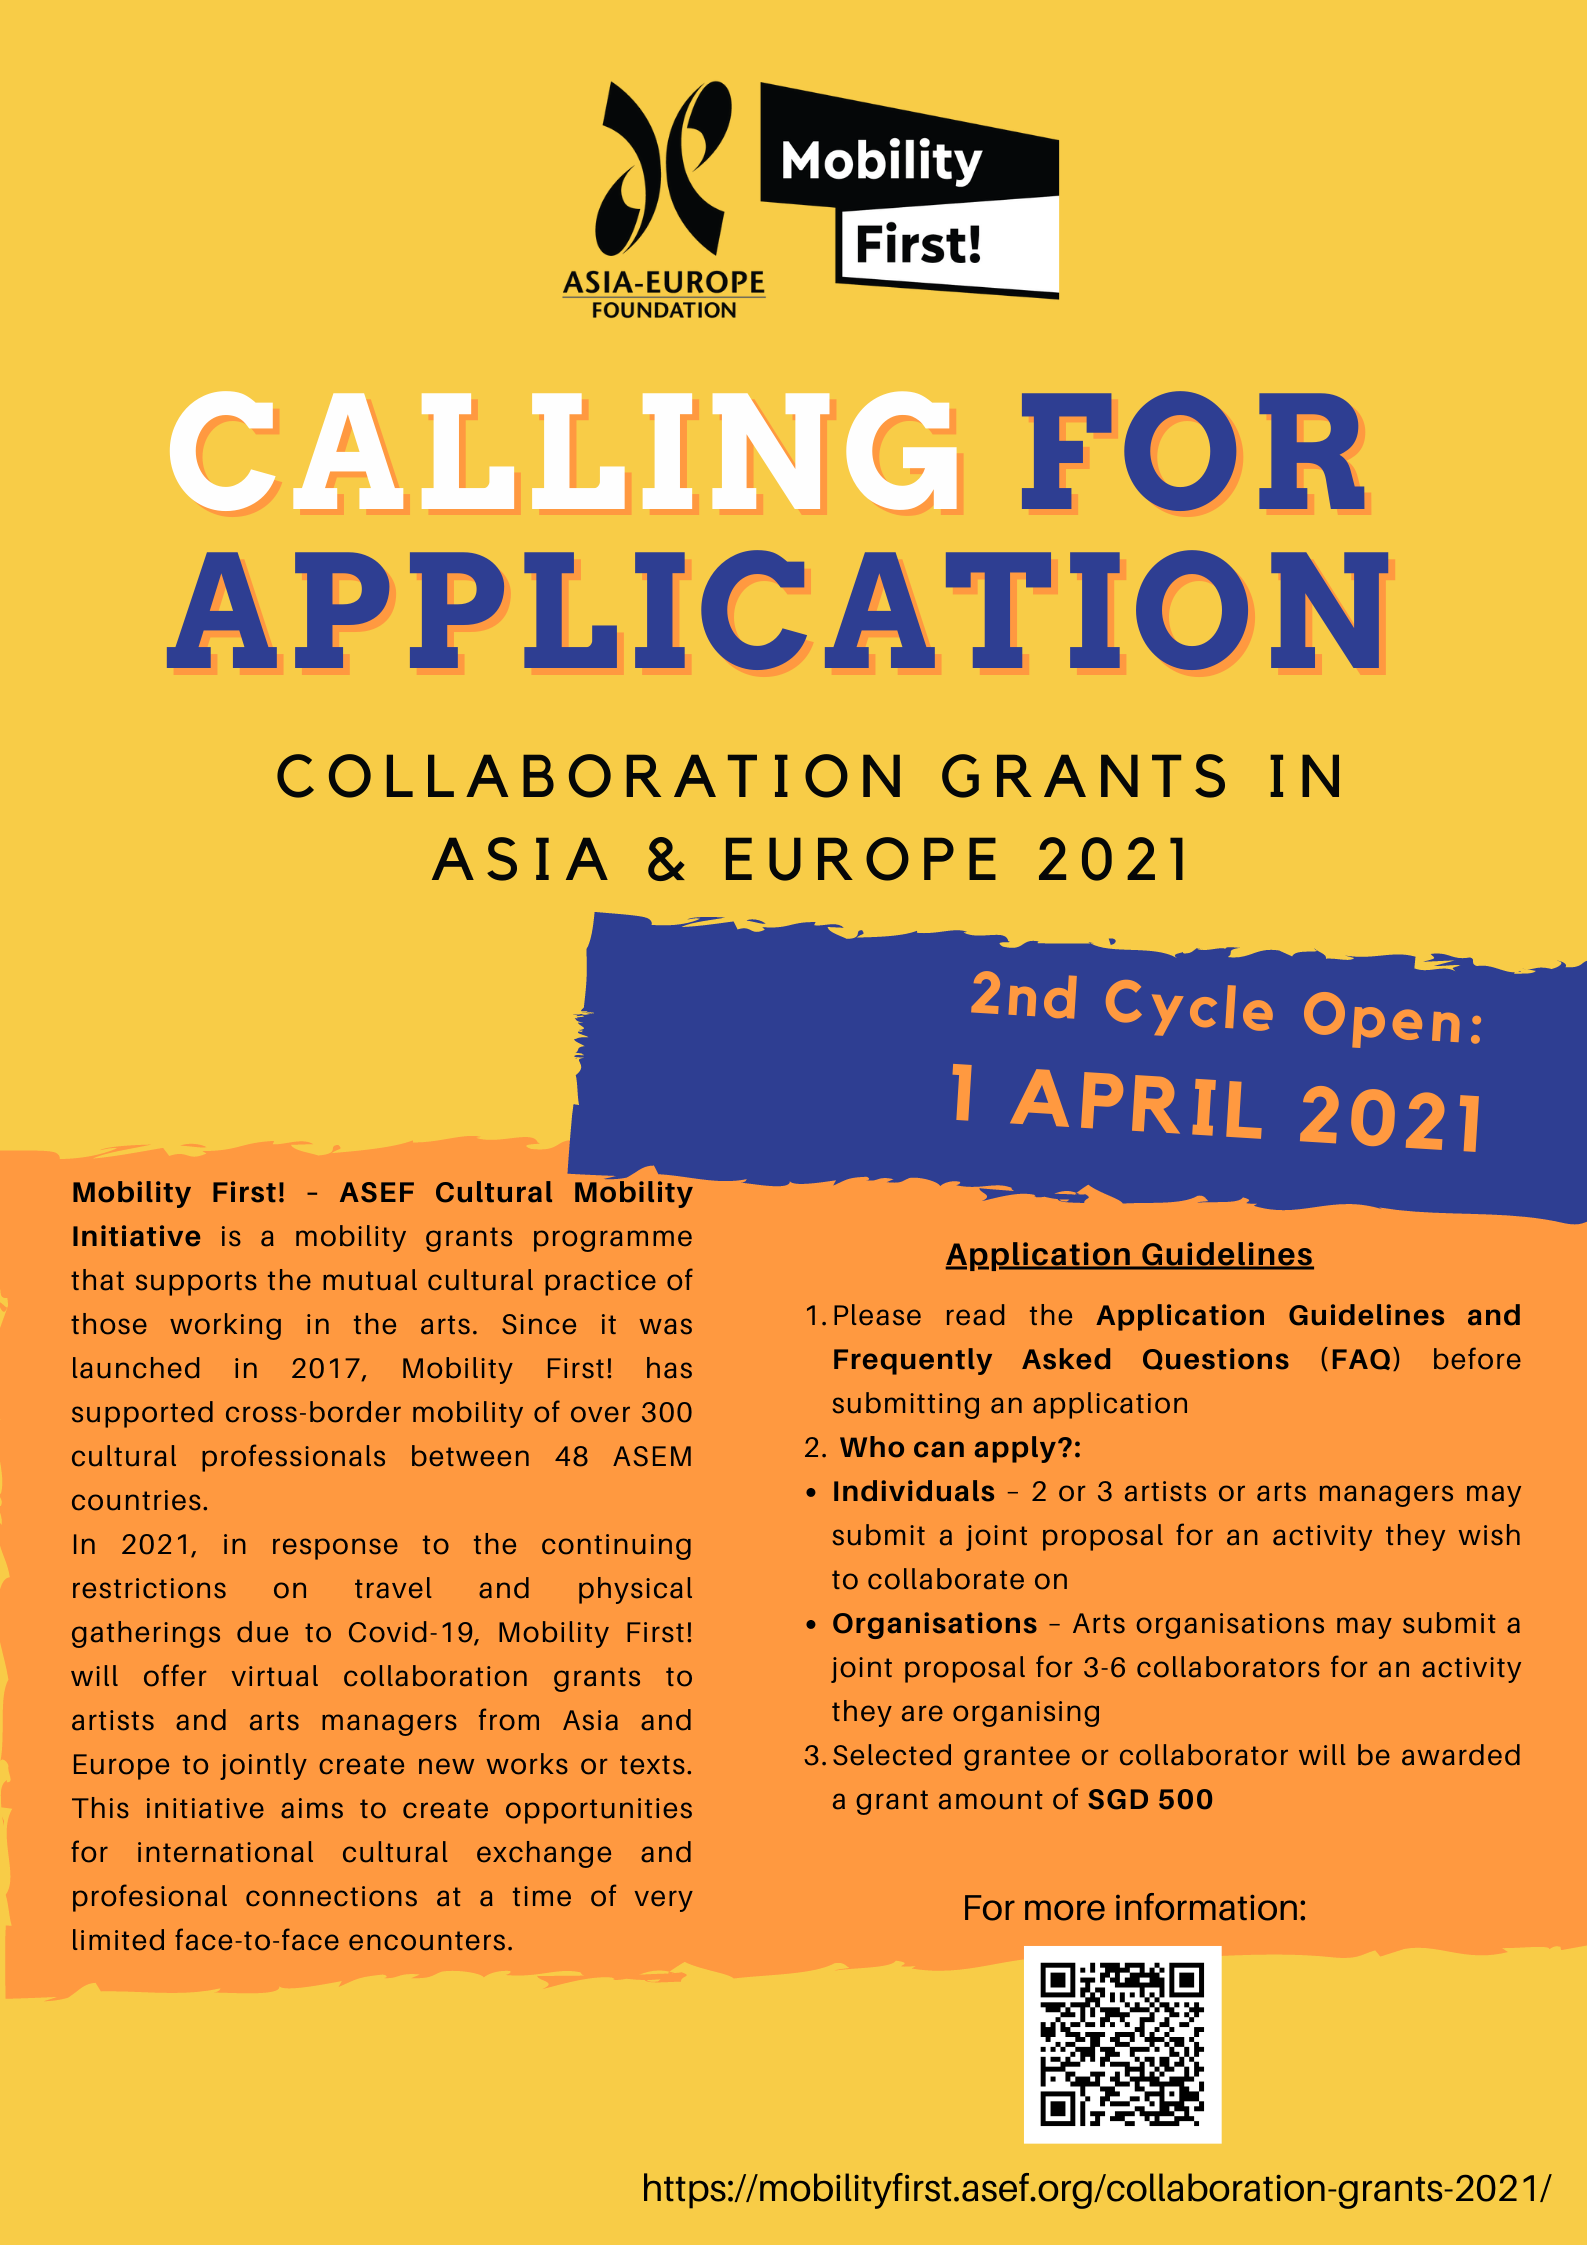 ASEF: Mobility First! Collaboration Grants 2021 - Cycle 2